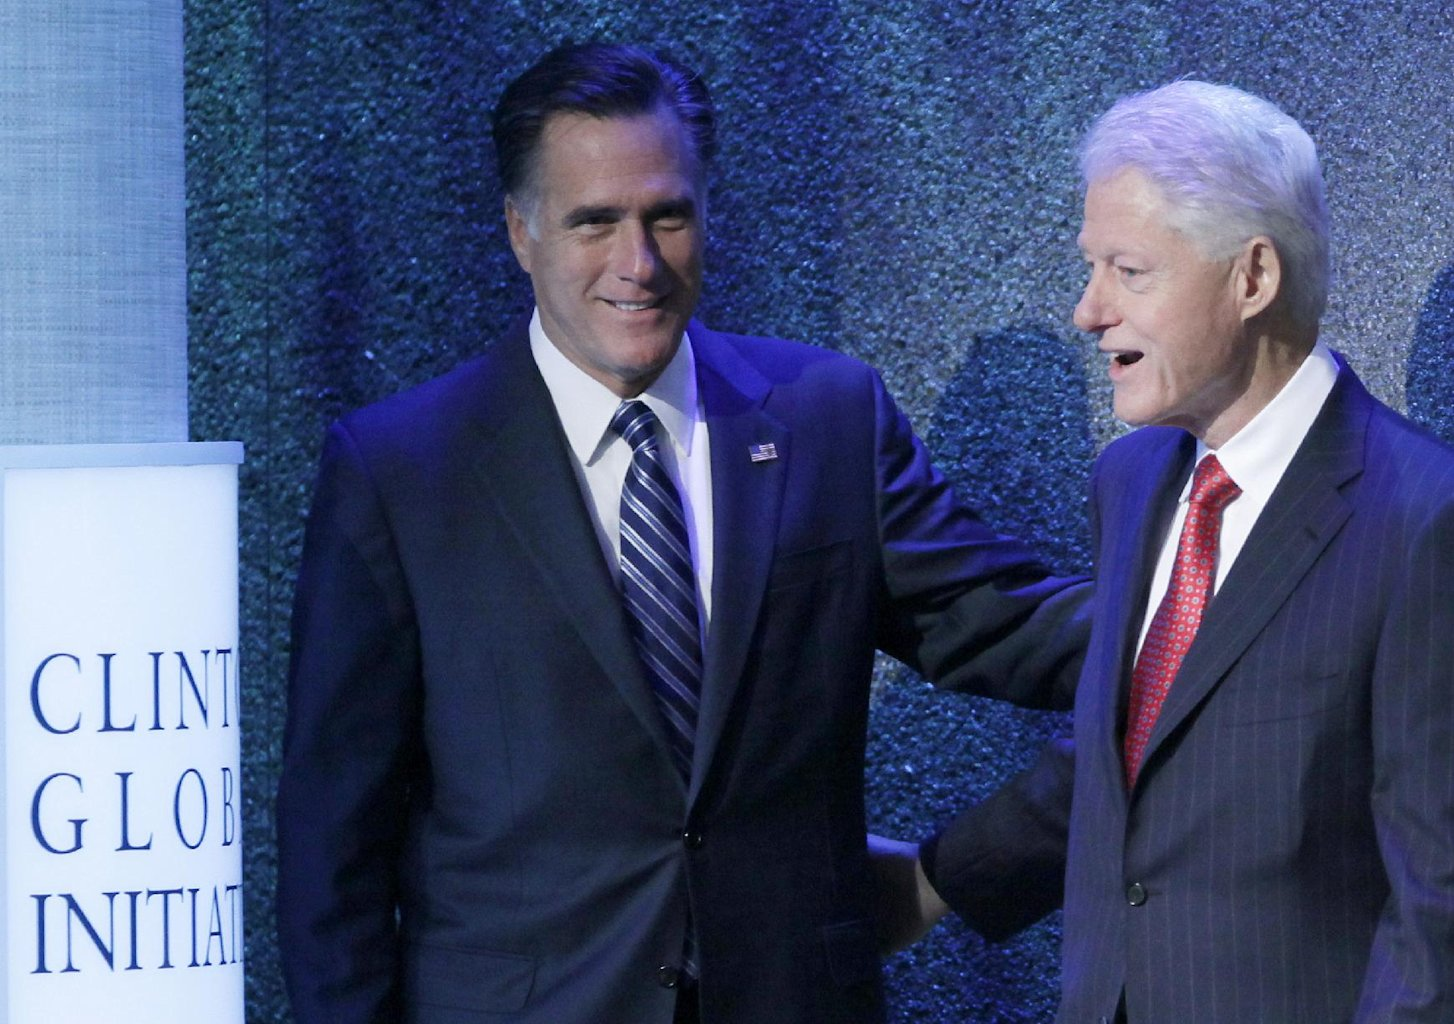 Republican presidential candidate, former Massachusetts Gov. Mitt Romney is introduced by former President Bill Clinton at the Clinton Global Initiative, Tuesday, Sept. 25, 2012, in New York.